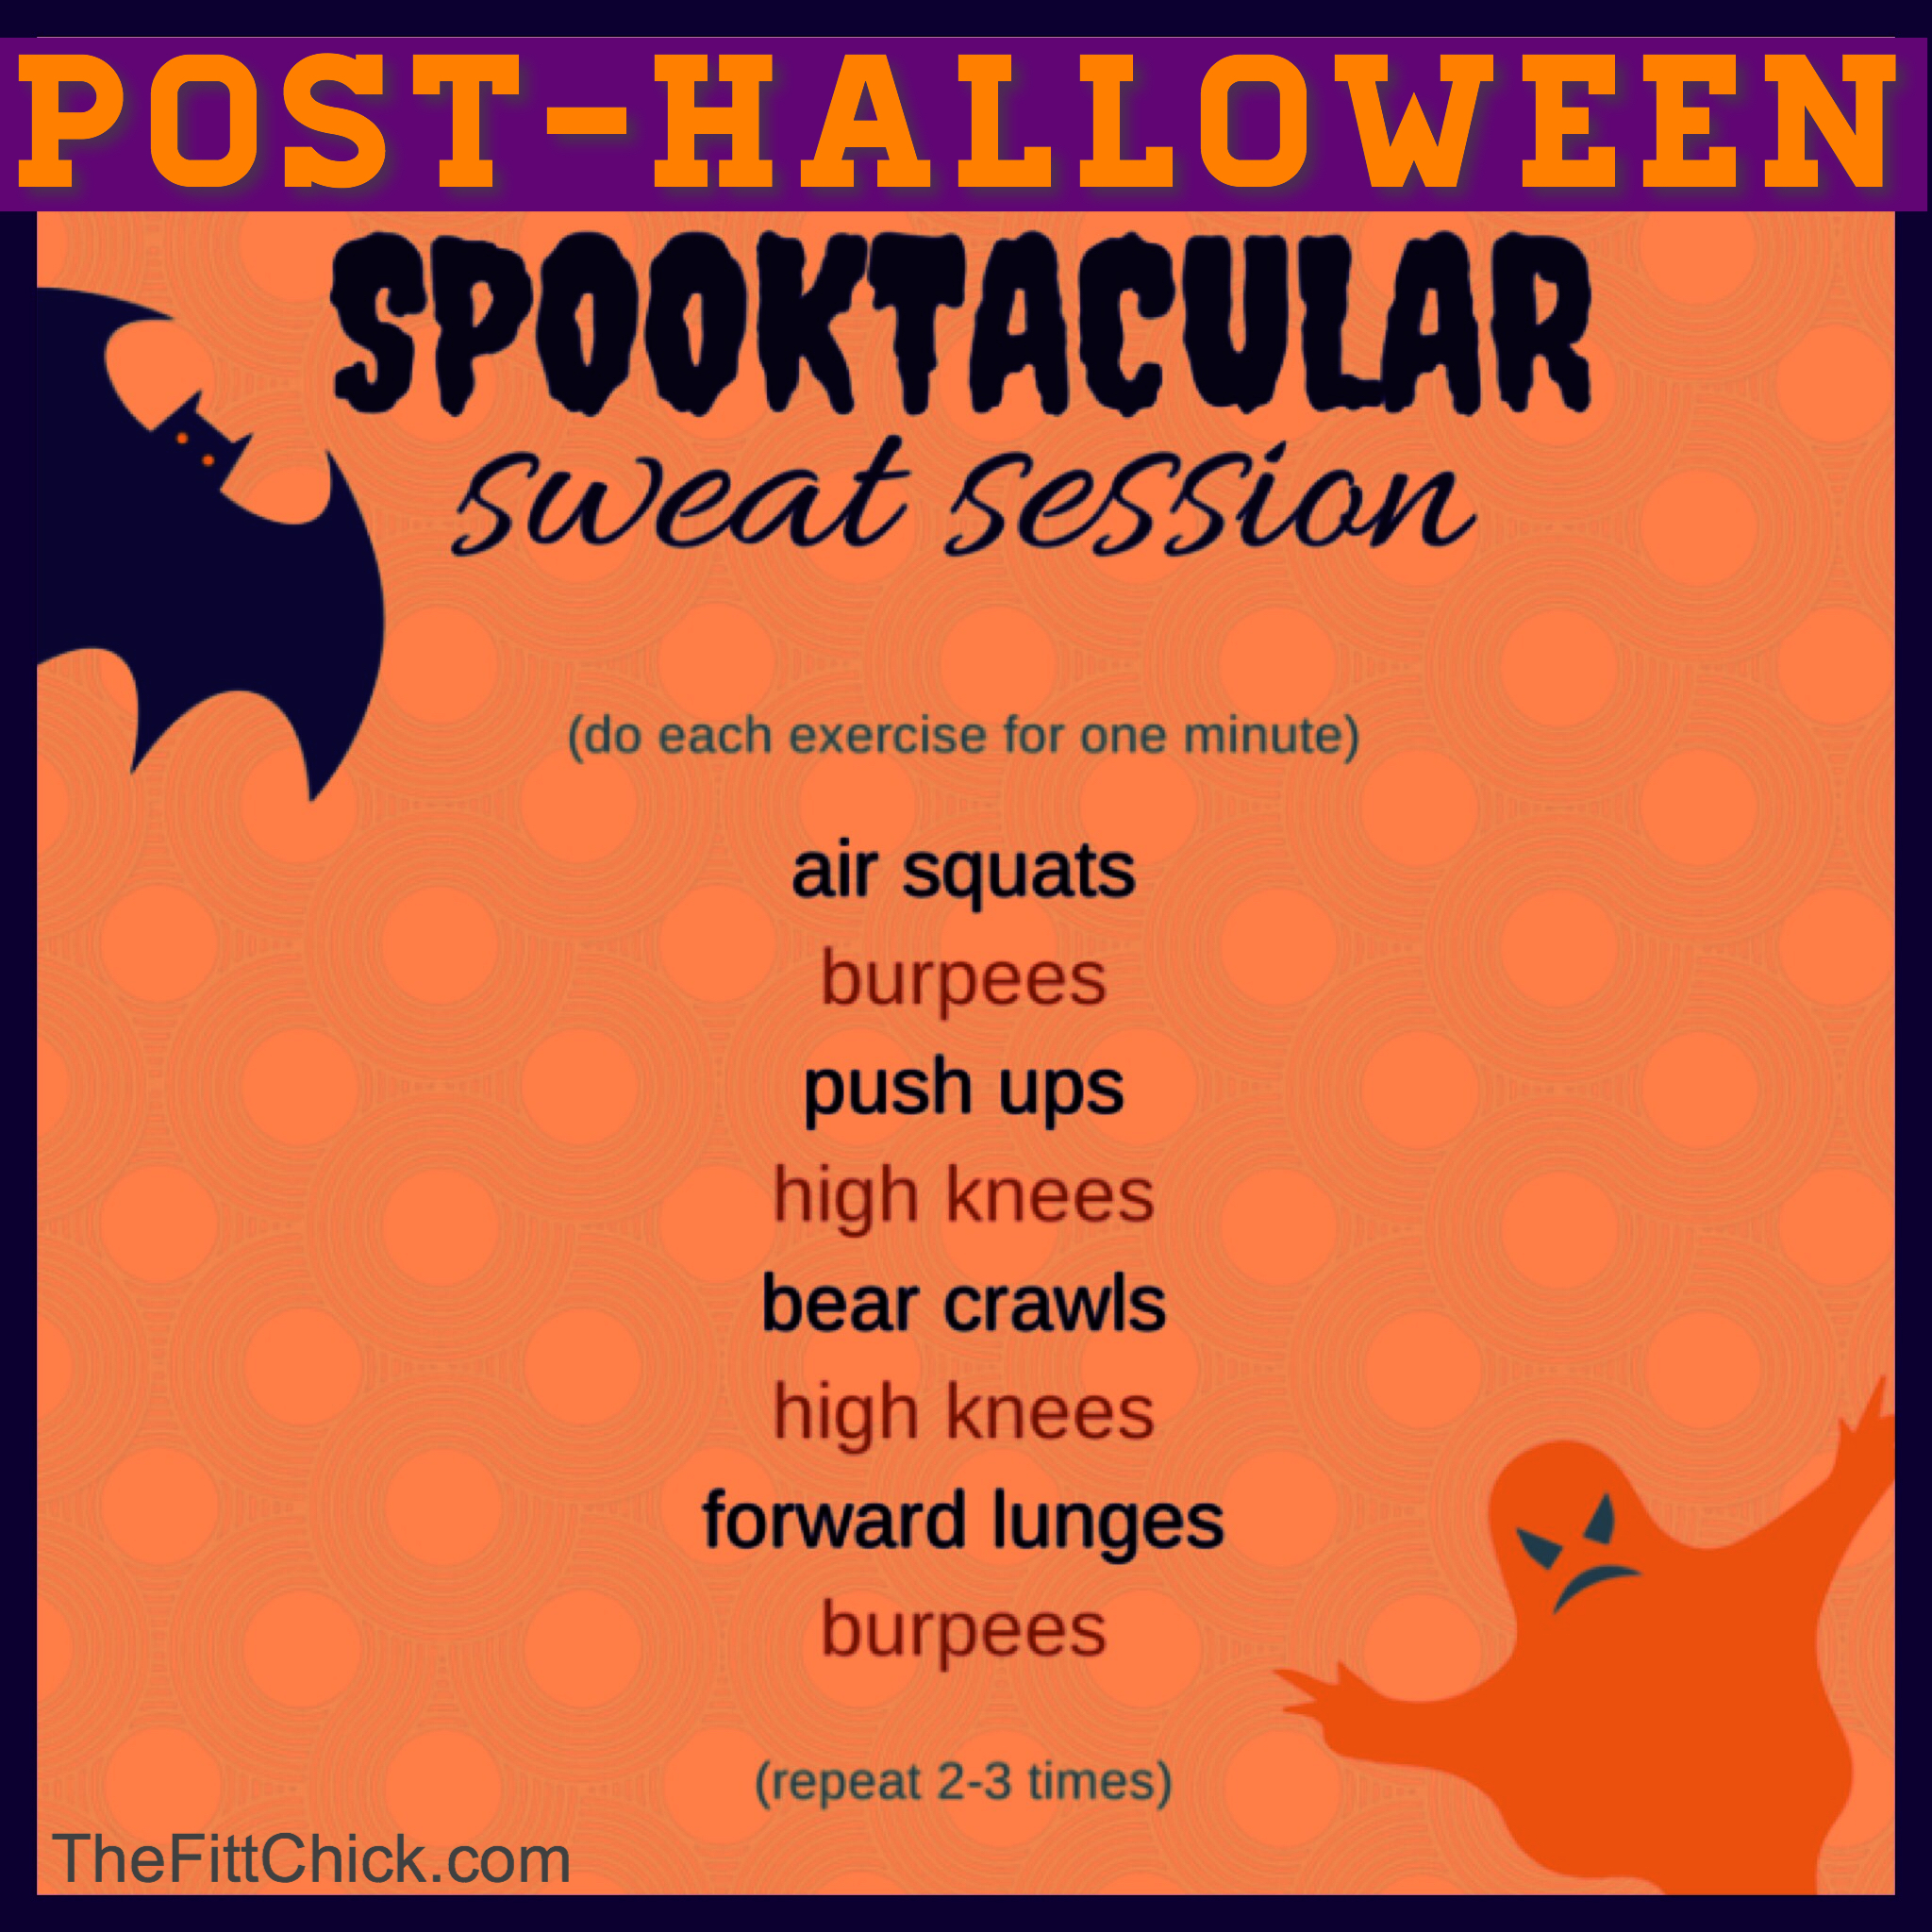 Your Post Halloween Hiit Workout Thefittchick